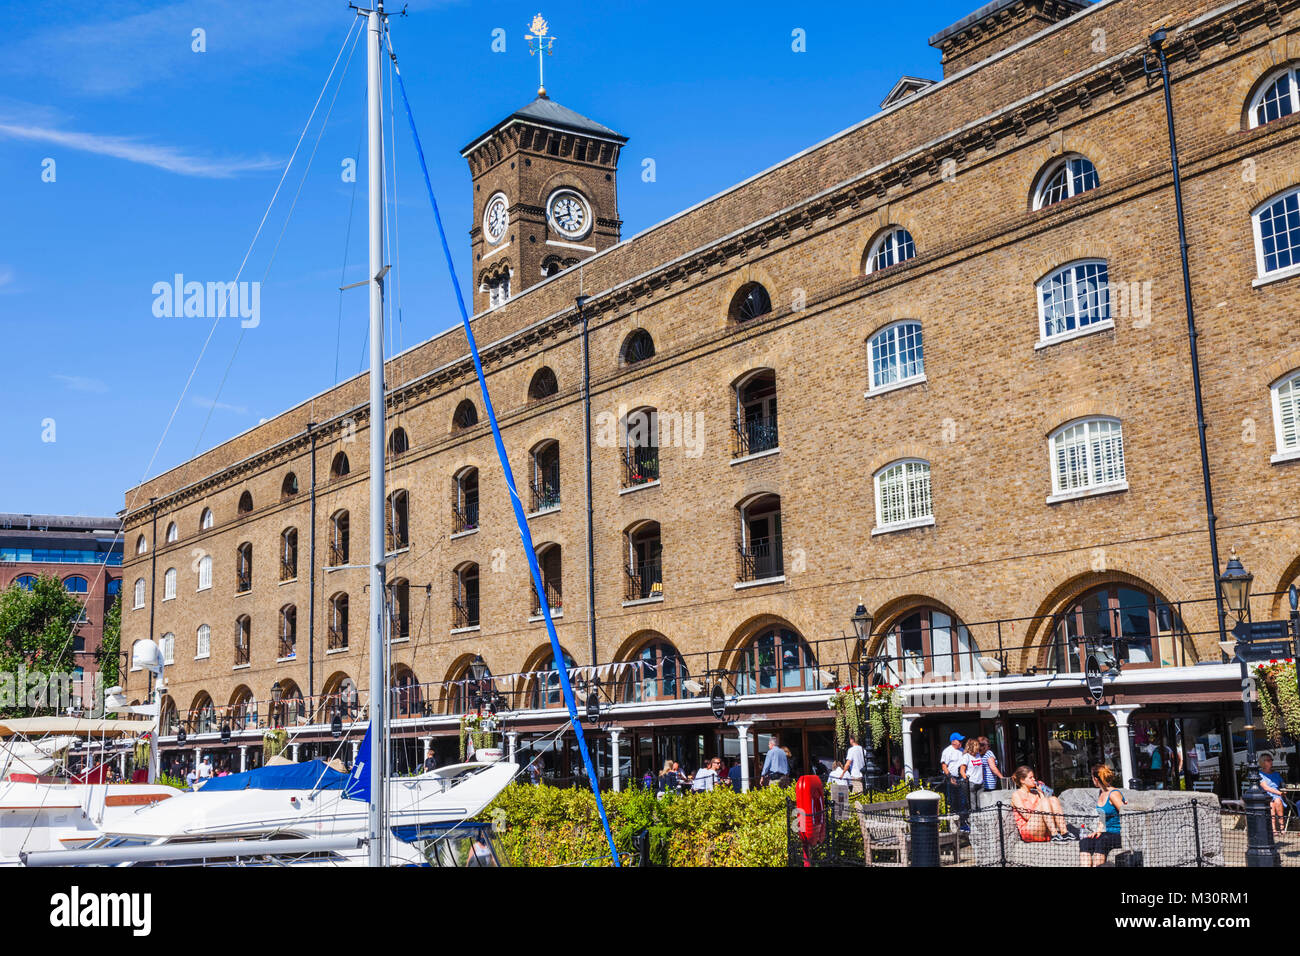 L'Angleterre, Londres, Wapping, St Katharine Docks, Commodity Quay Photo Stock